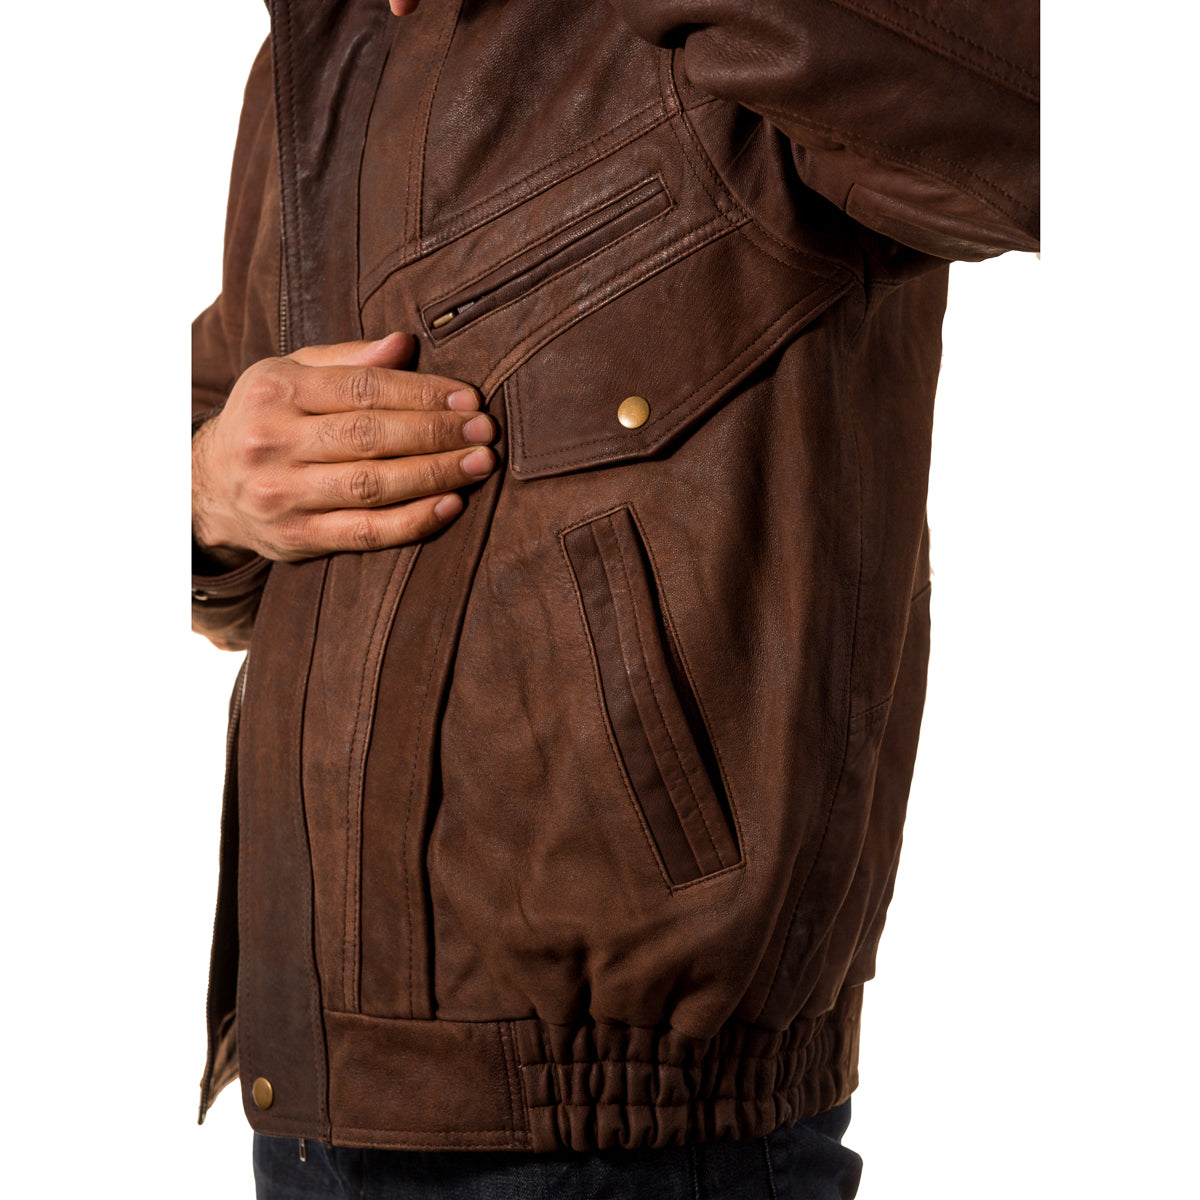 Mens Italian style retro bomber blouson leather jacket in Black, Tan and Brown